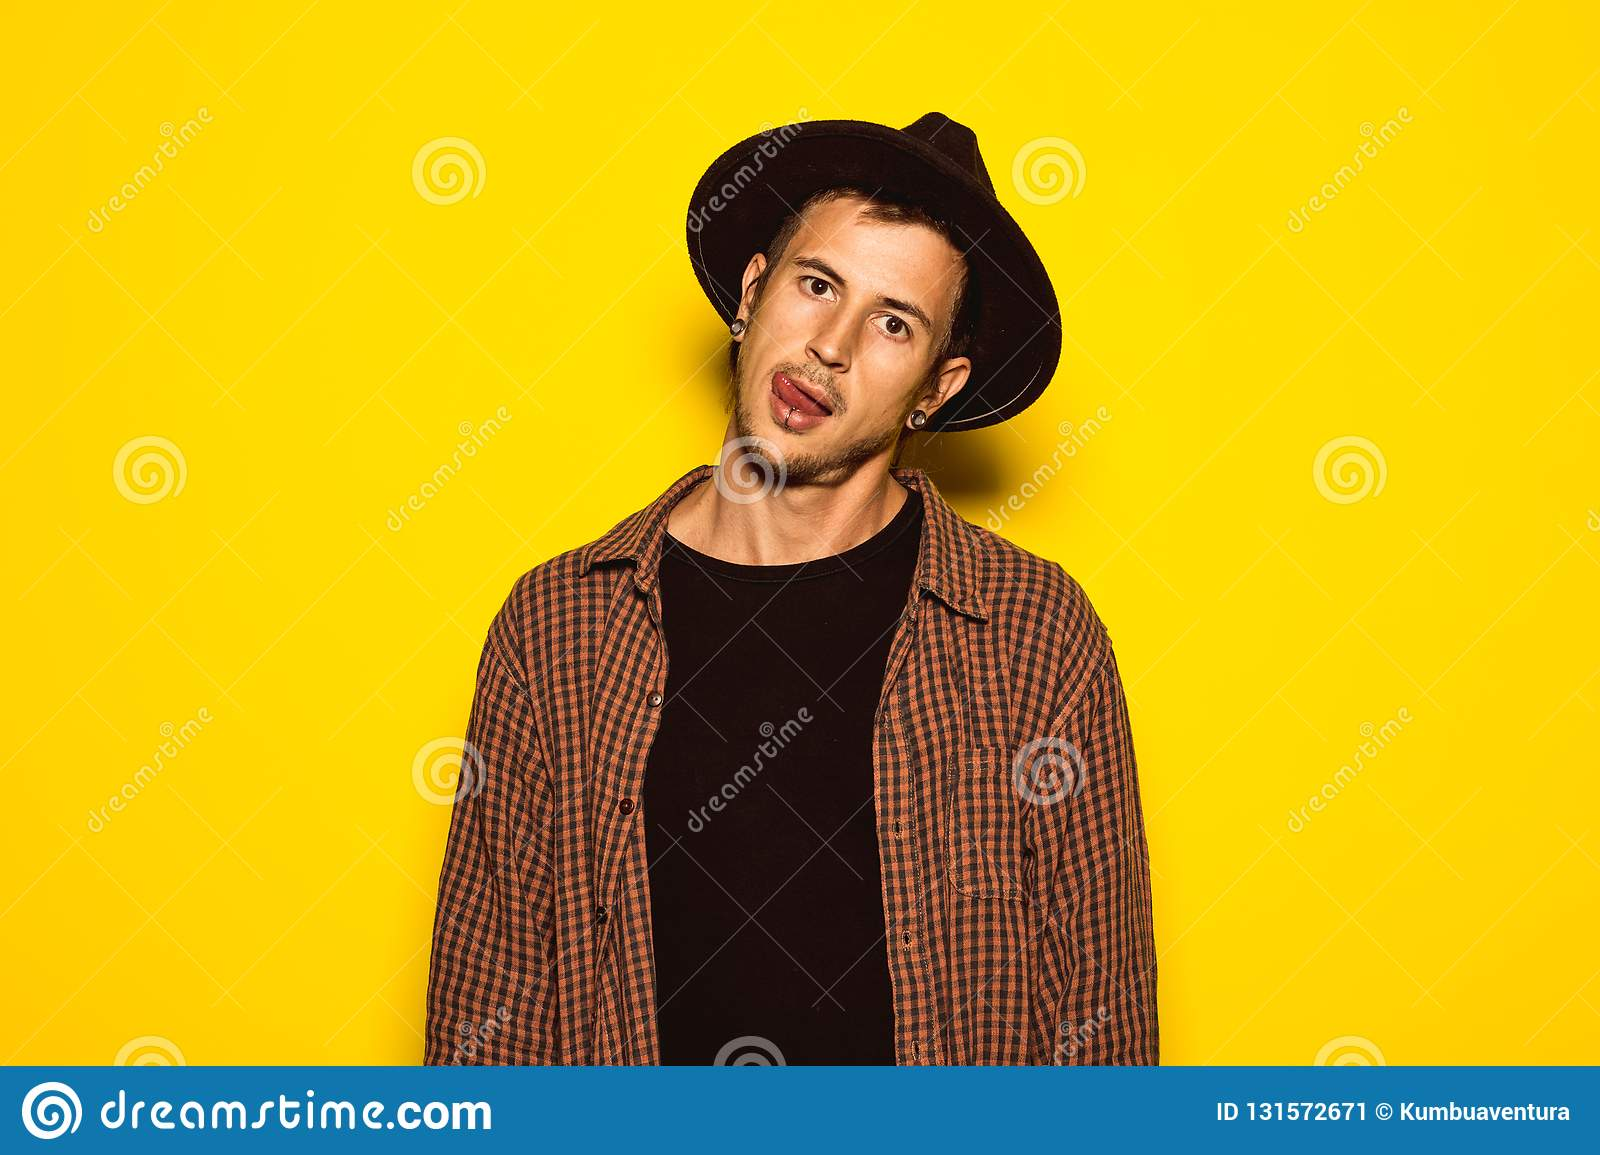 a96c6213bf8 Modern and handsome Guy with a black hat on a yellow background. Young man  cool dress